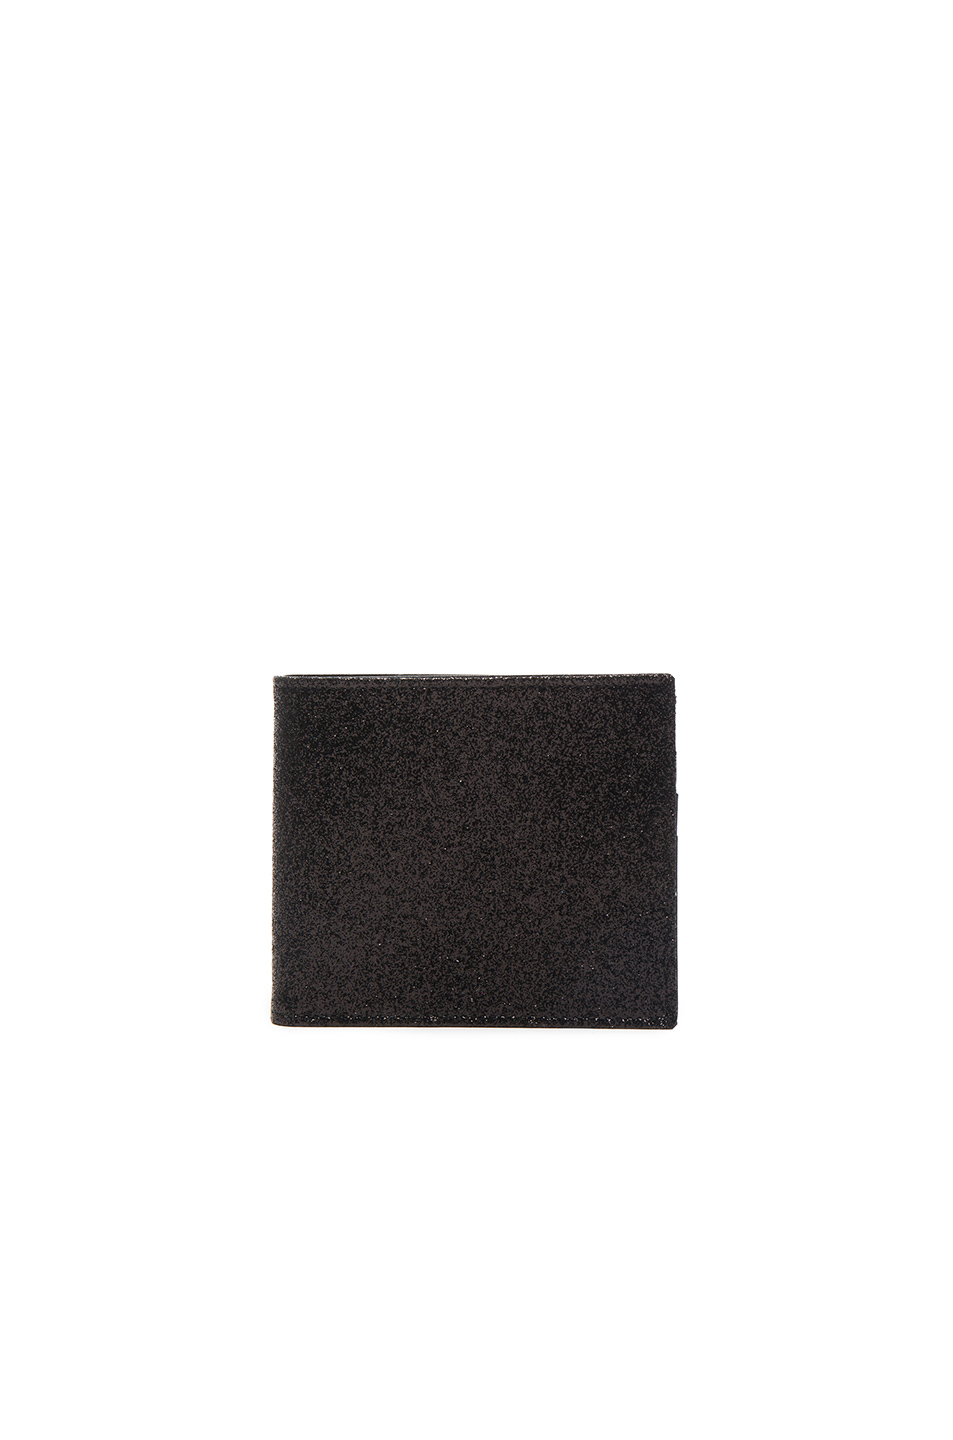 Maison Margiela Glitter & Calf Leather Billfold Wallet in Black,Metallics